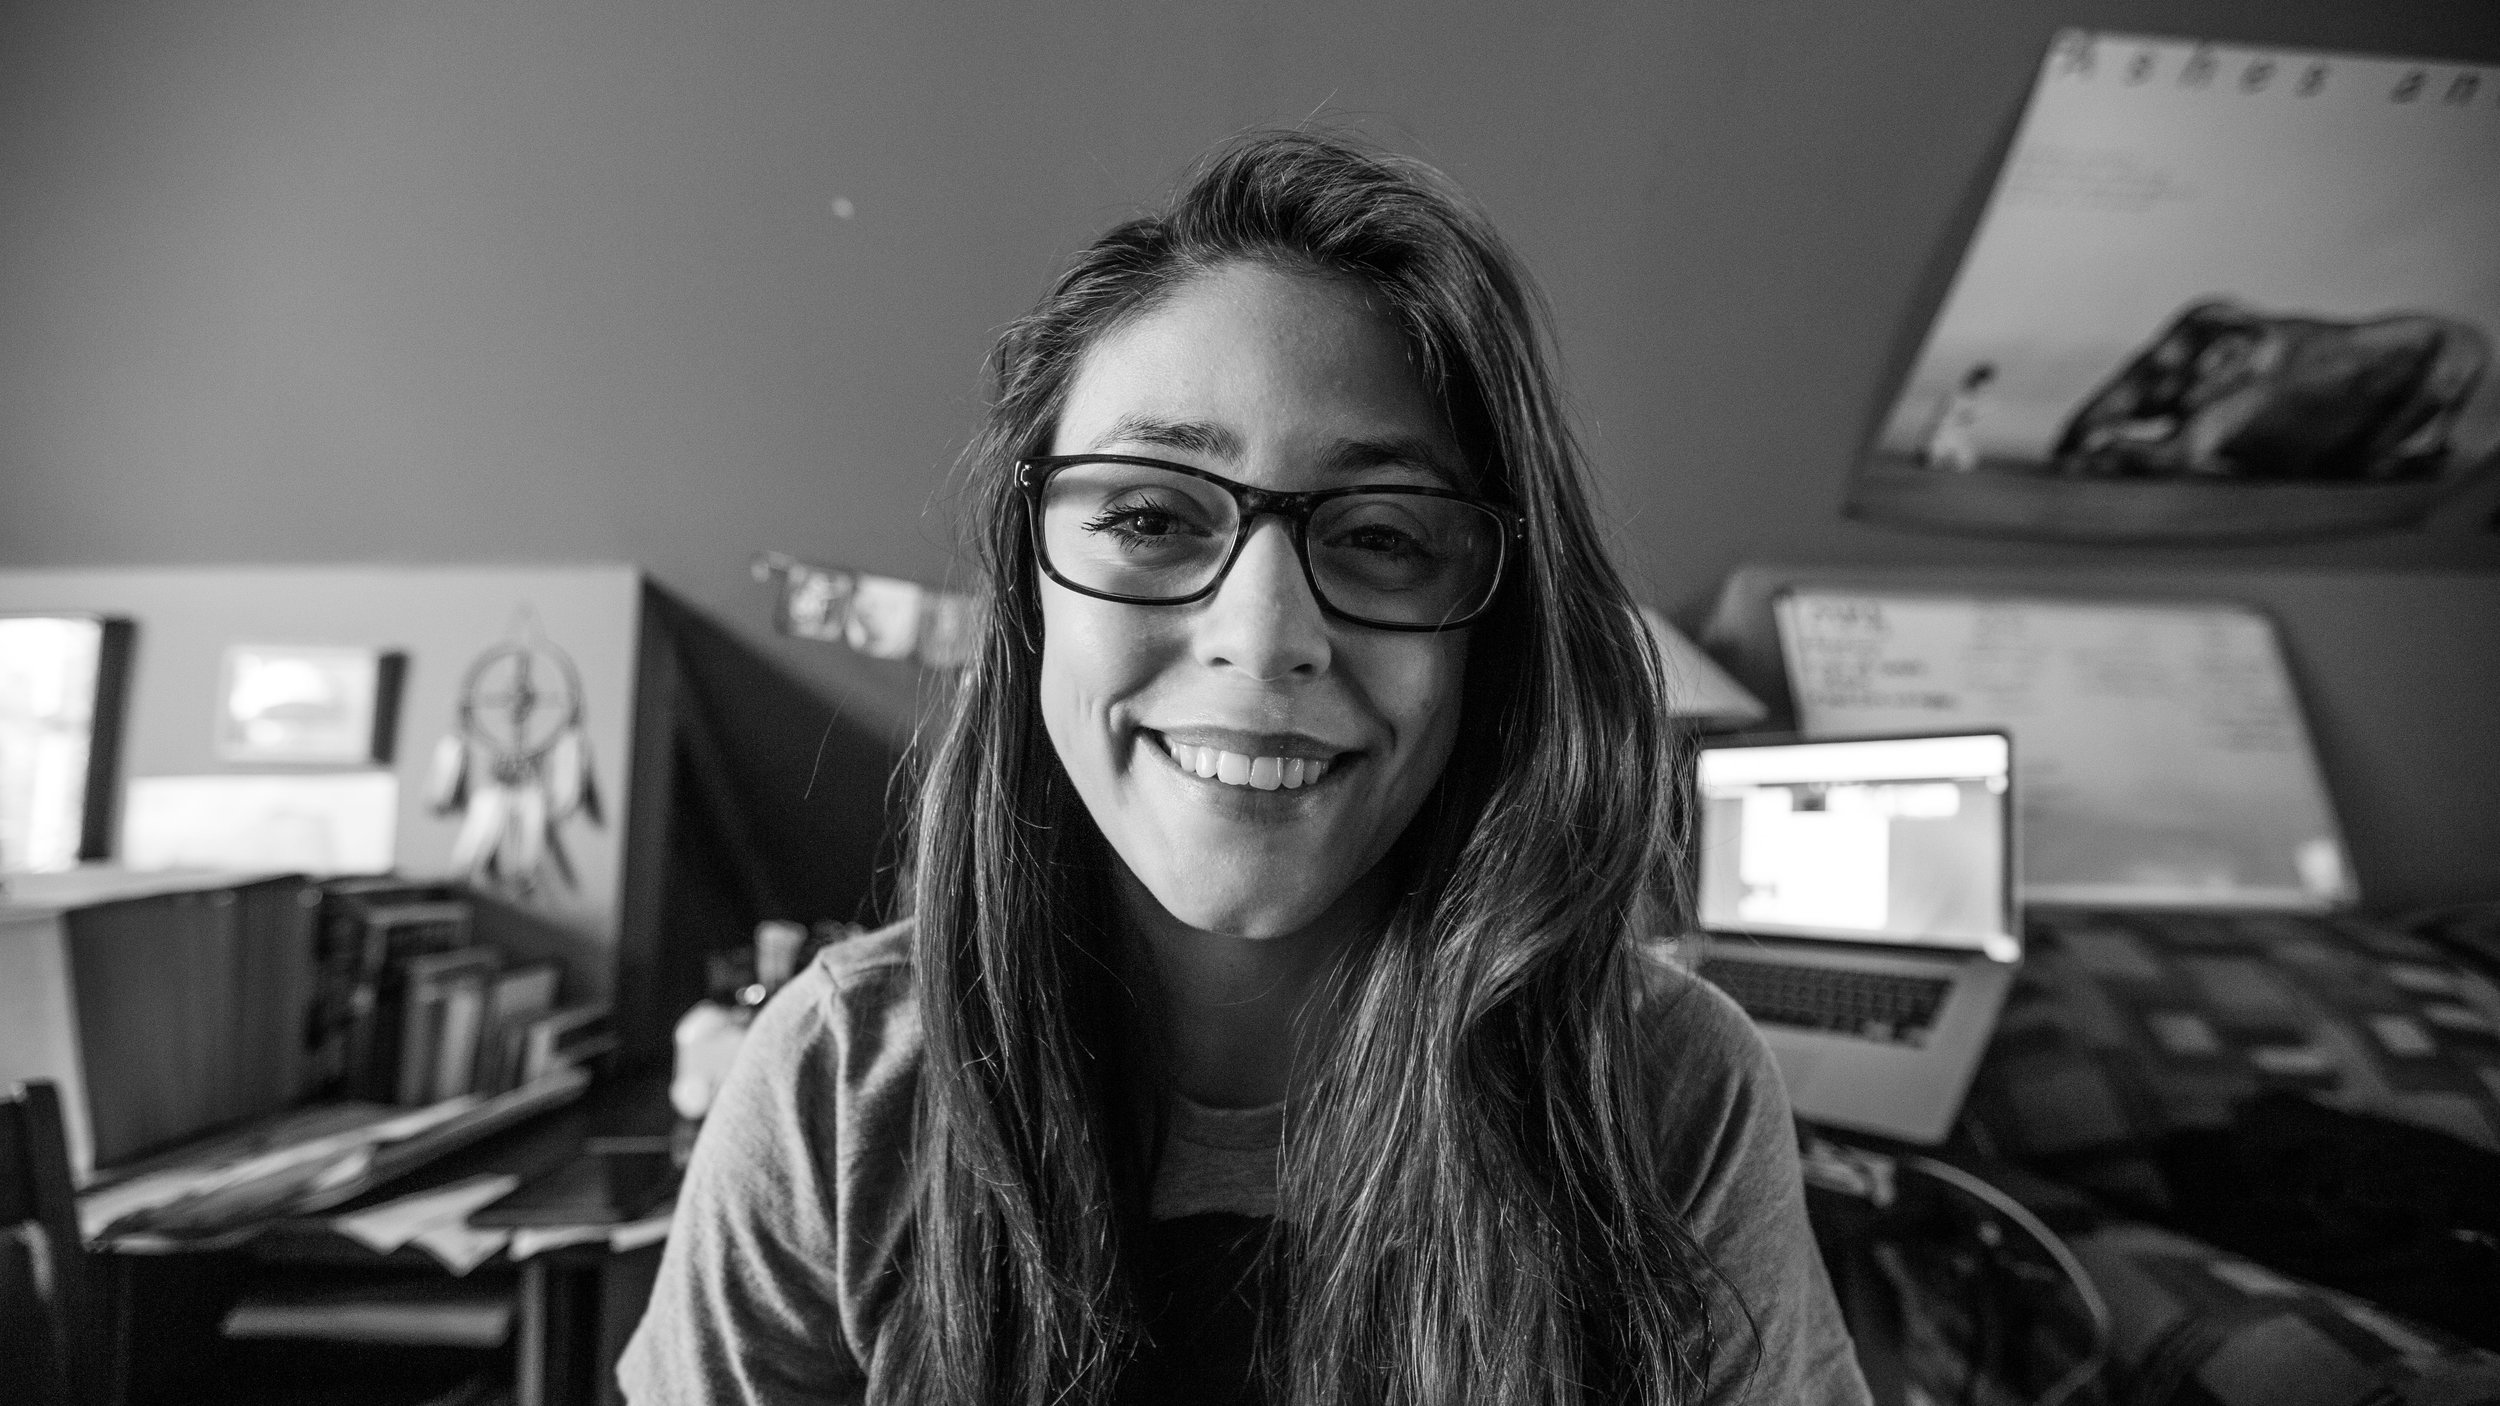 PALOMA CRIOLLO   Full time freelance videographer, photographer and digital marketer mainly working with local bands producing music videos as well as the content creator for podcast ROADIE FREE RADIO.